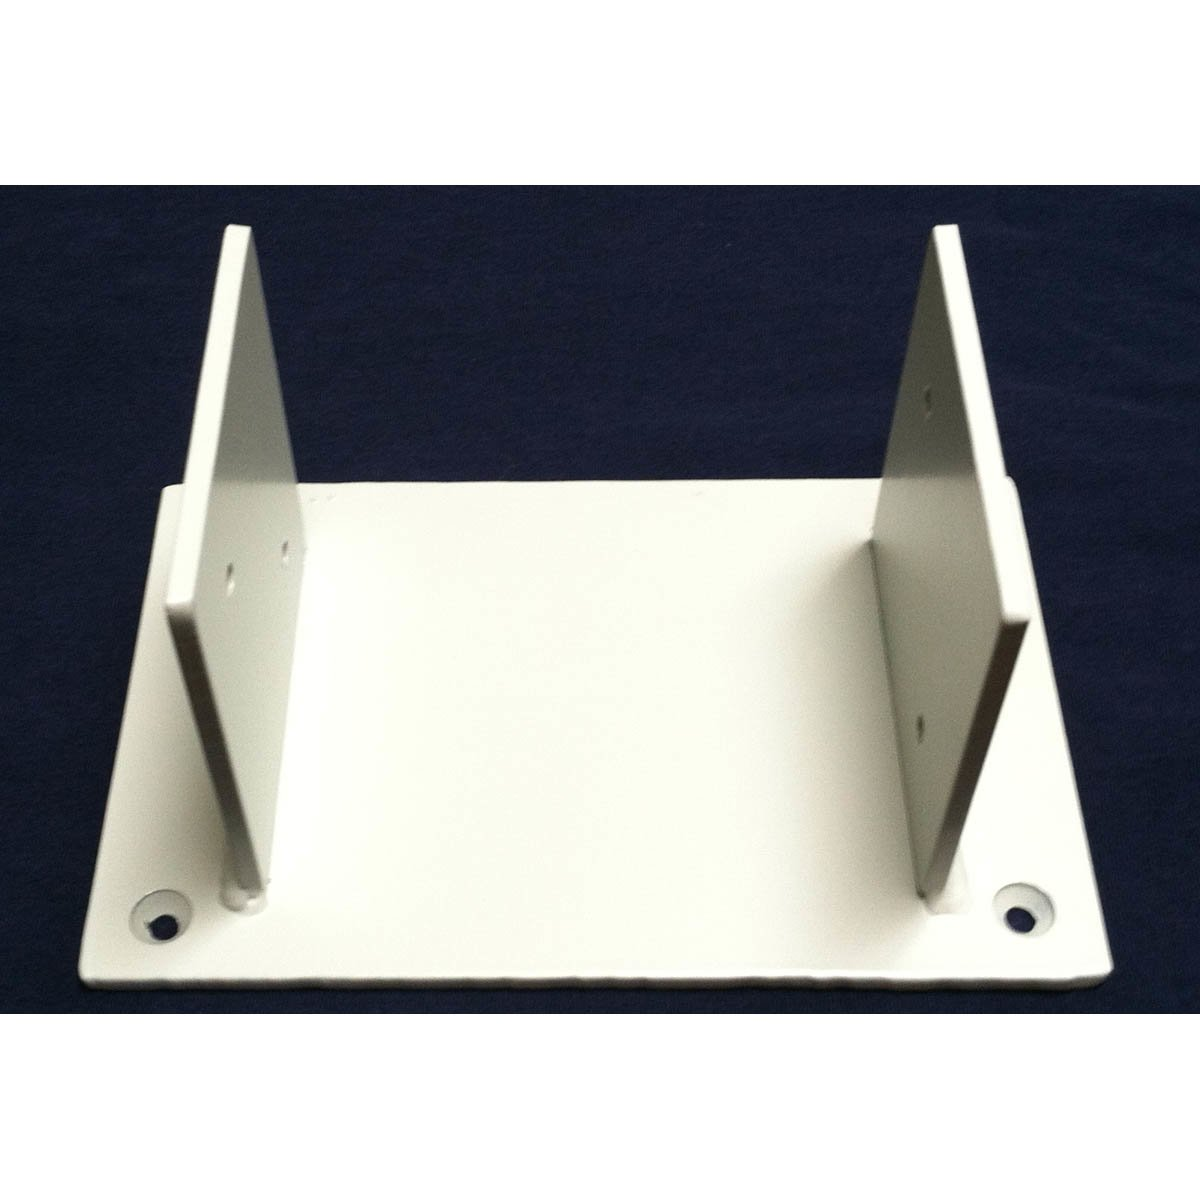 2 - Sided Wood Post Base Brackets Painted White